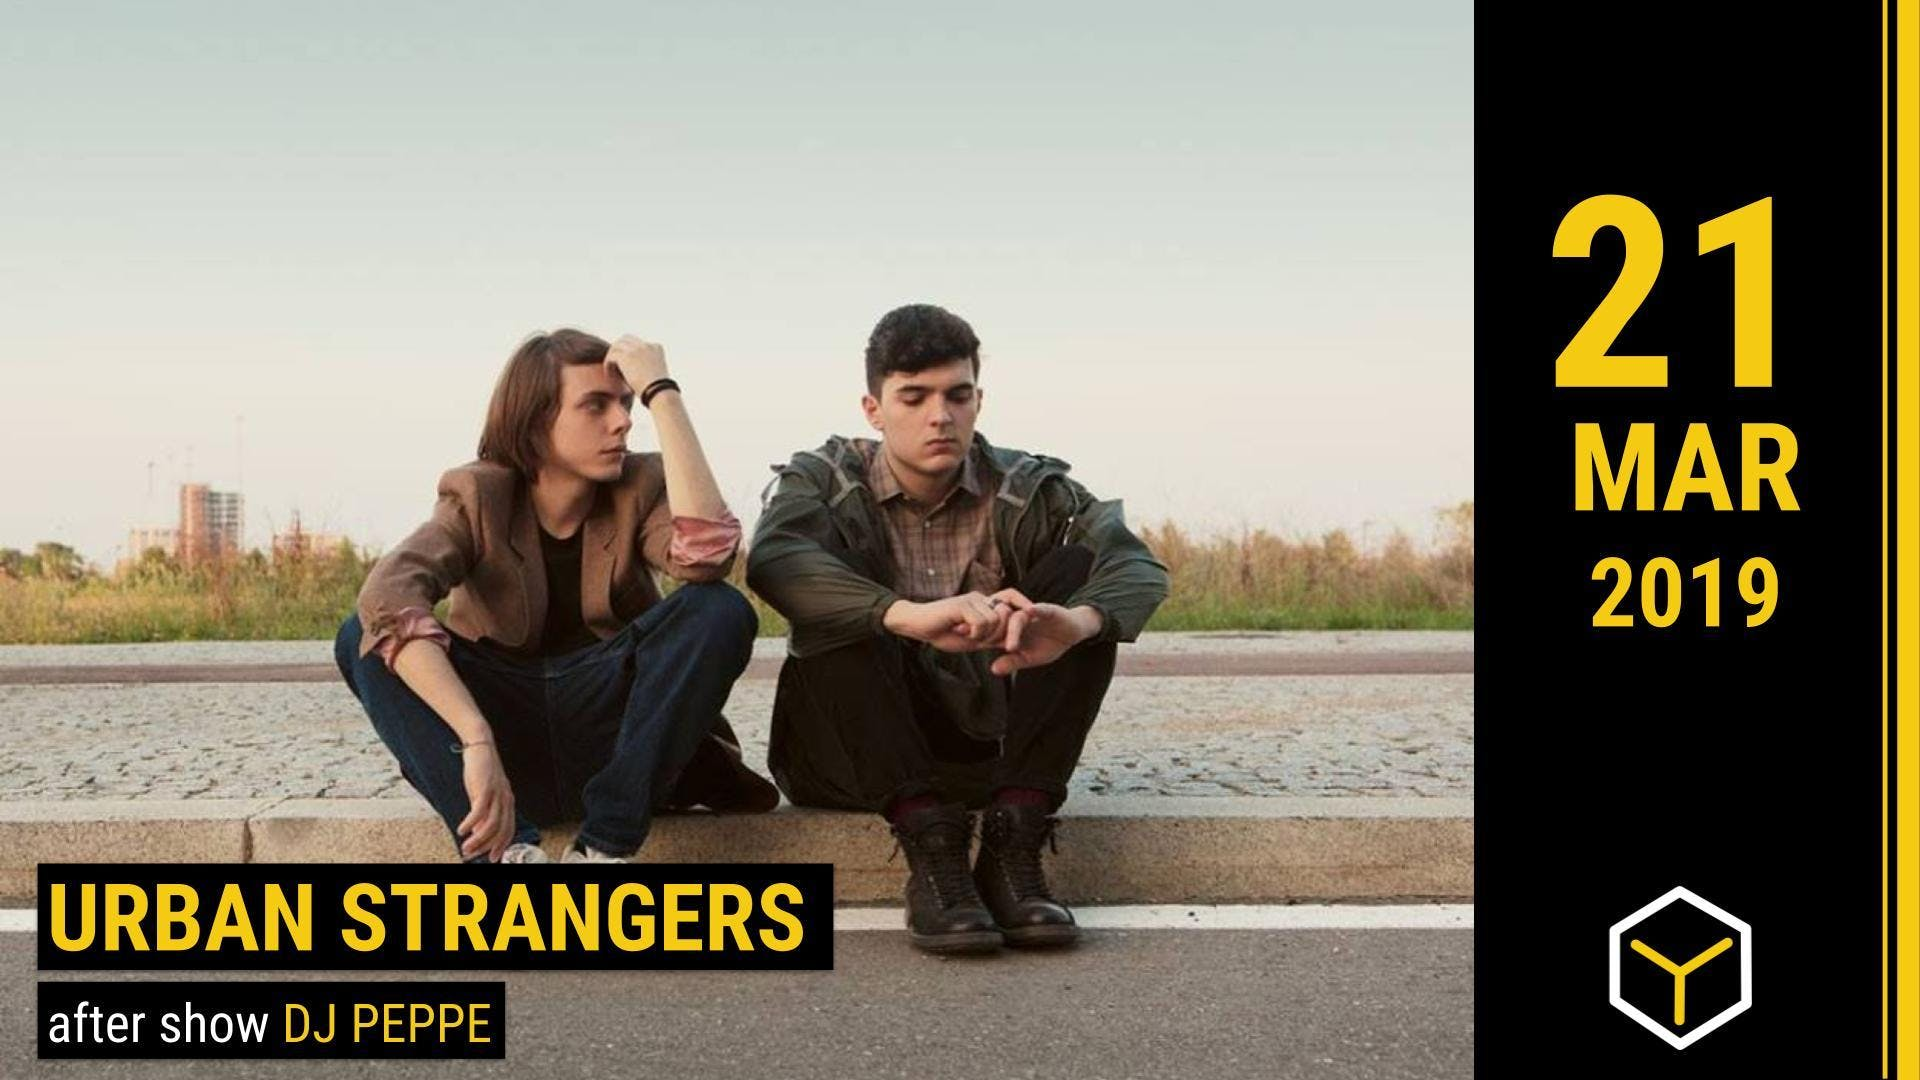 URBAN STRANGERS - The Yellow Bar